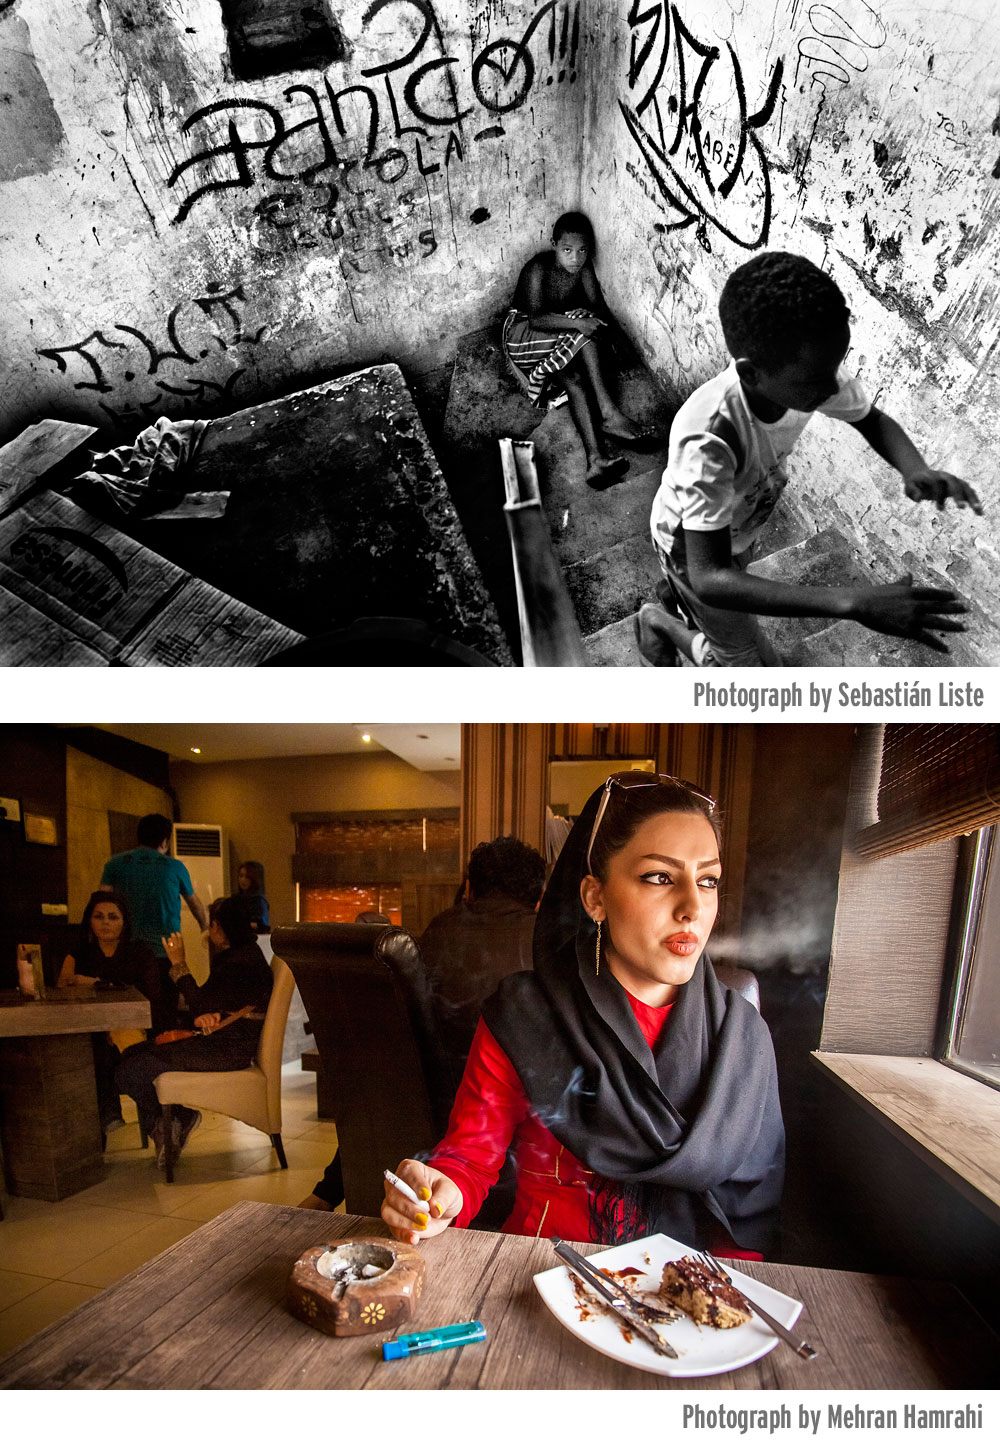 Photographs from the winning Alexia Grant proposals by photojournalists Sebastián Liste (at top) and Mehran Hamrahi.